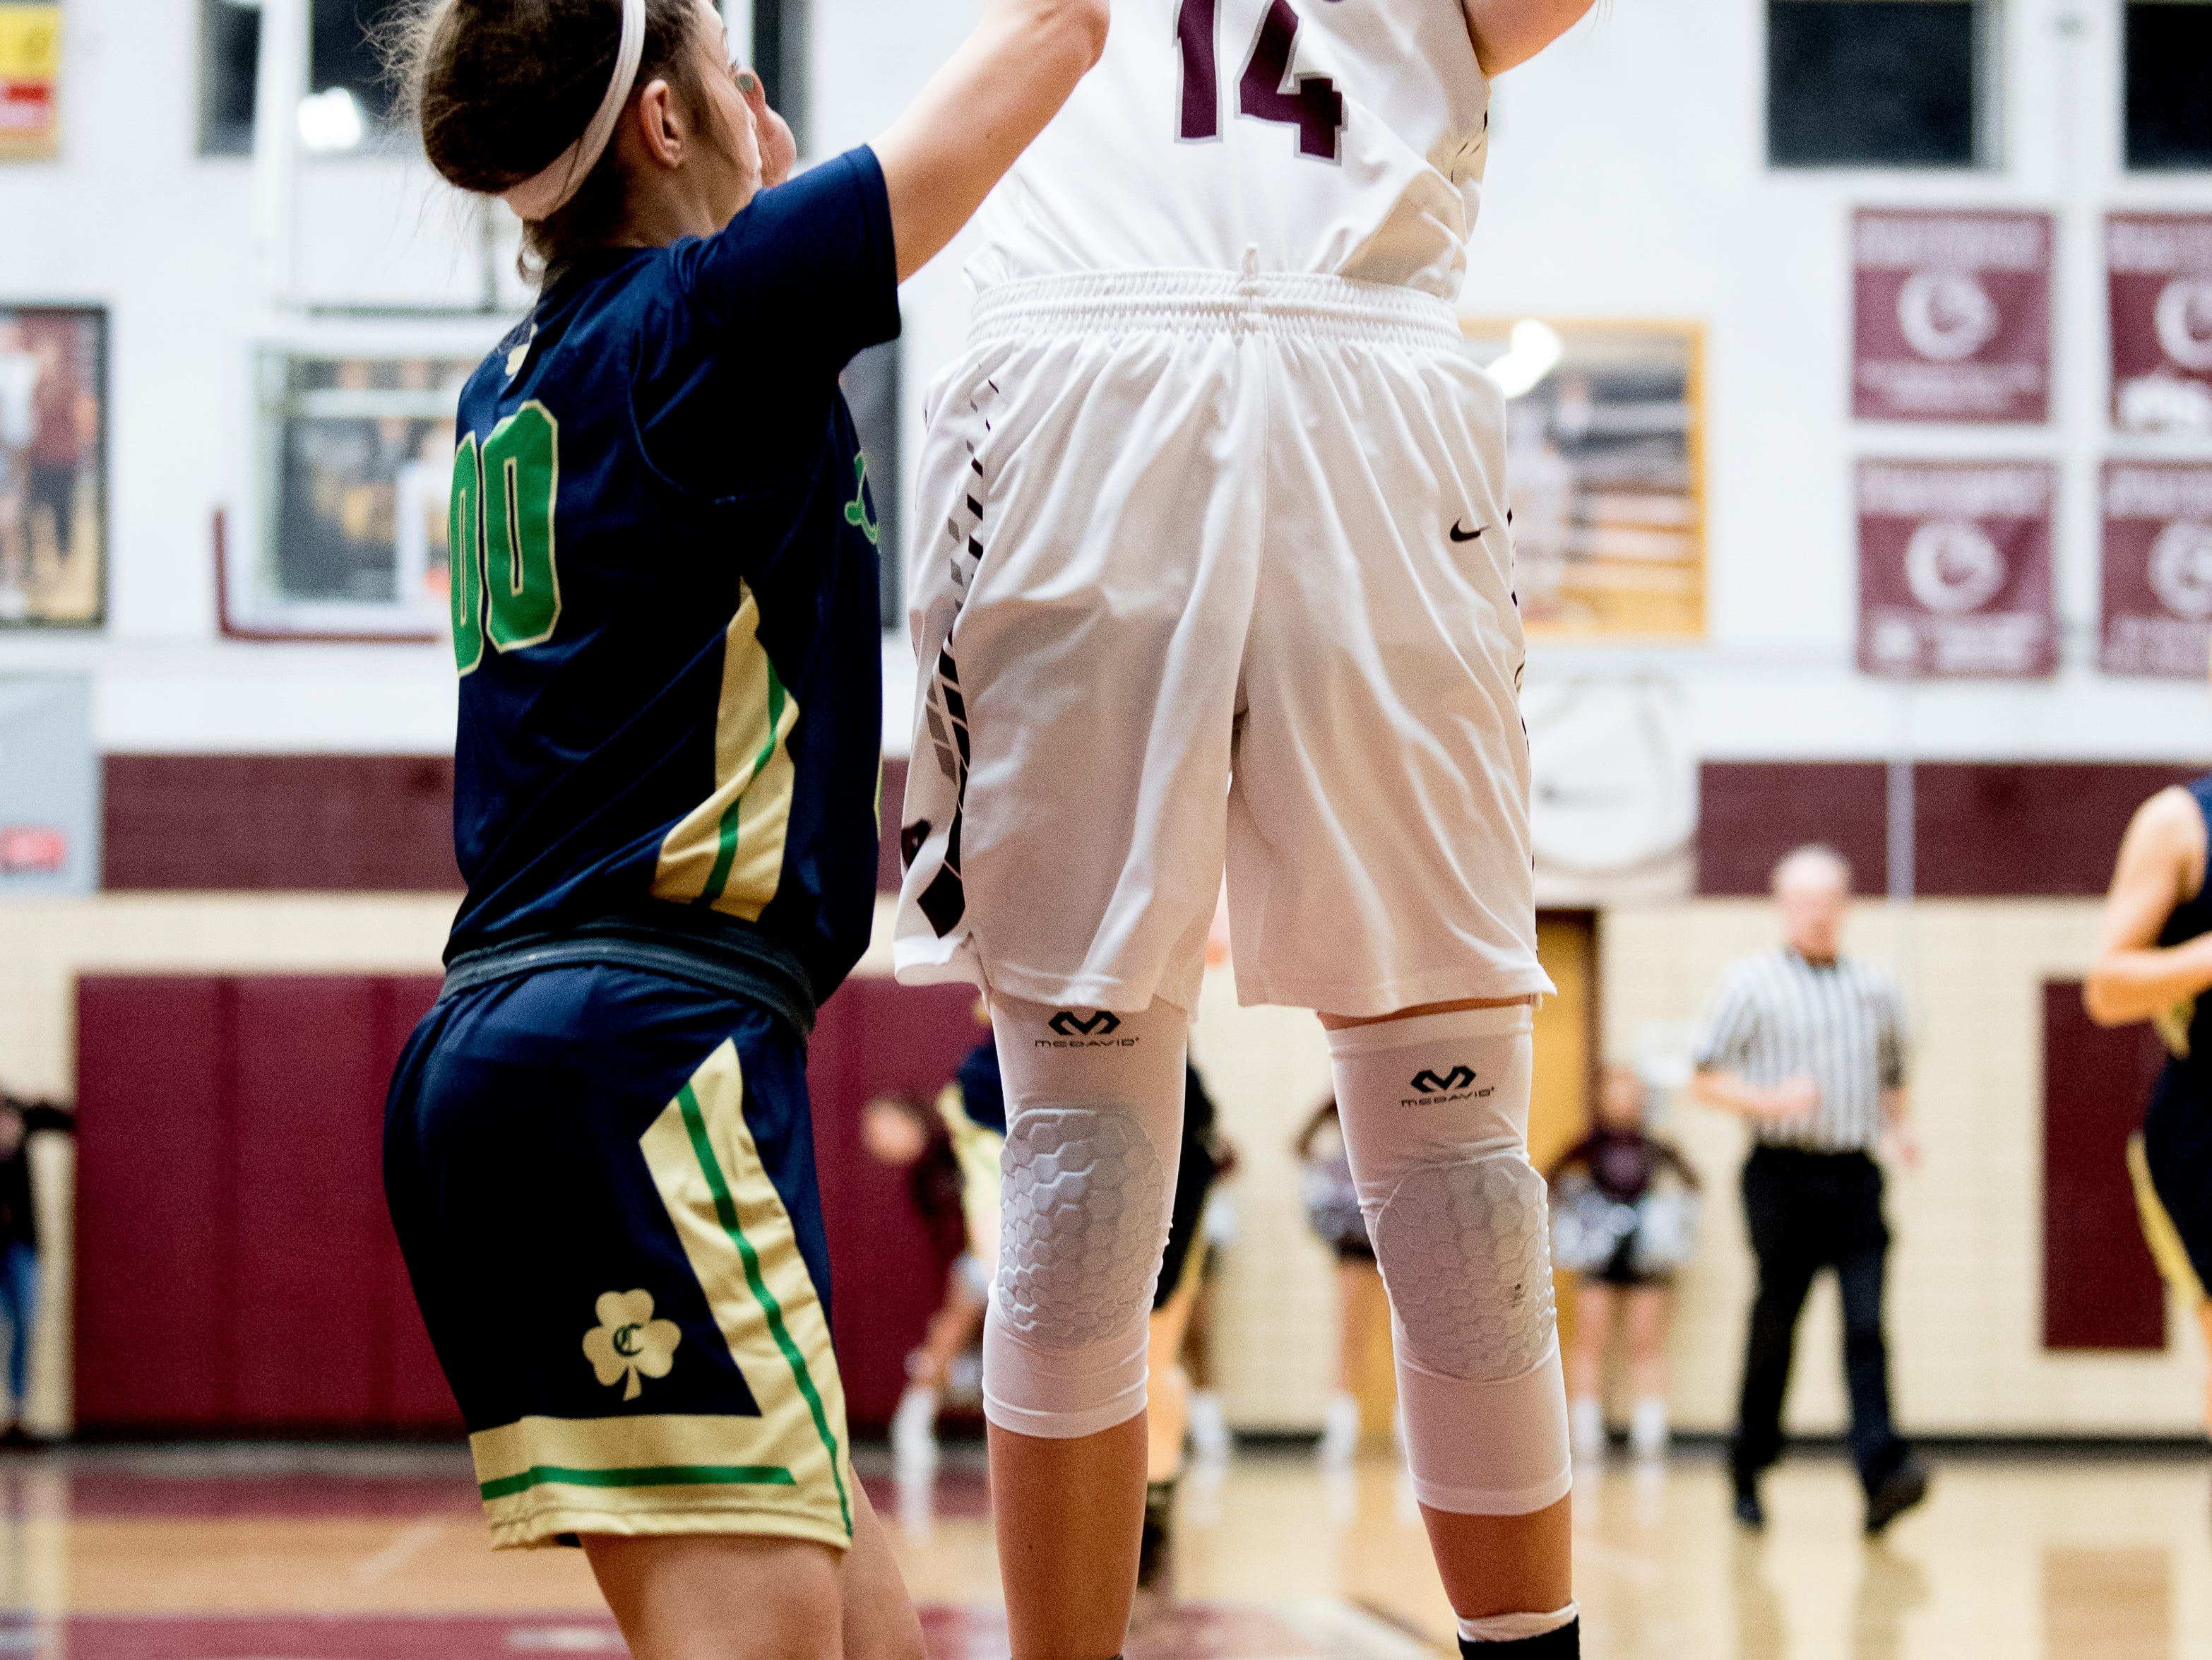 Bearden's Annaka Hall (14) shoots past Catholic's Natalie Perry (00) during a game between Bearden and Catholic at Bearden High School in Knoxville, Tennessee on Thursday, January 10, 2019.